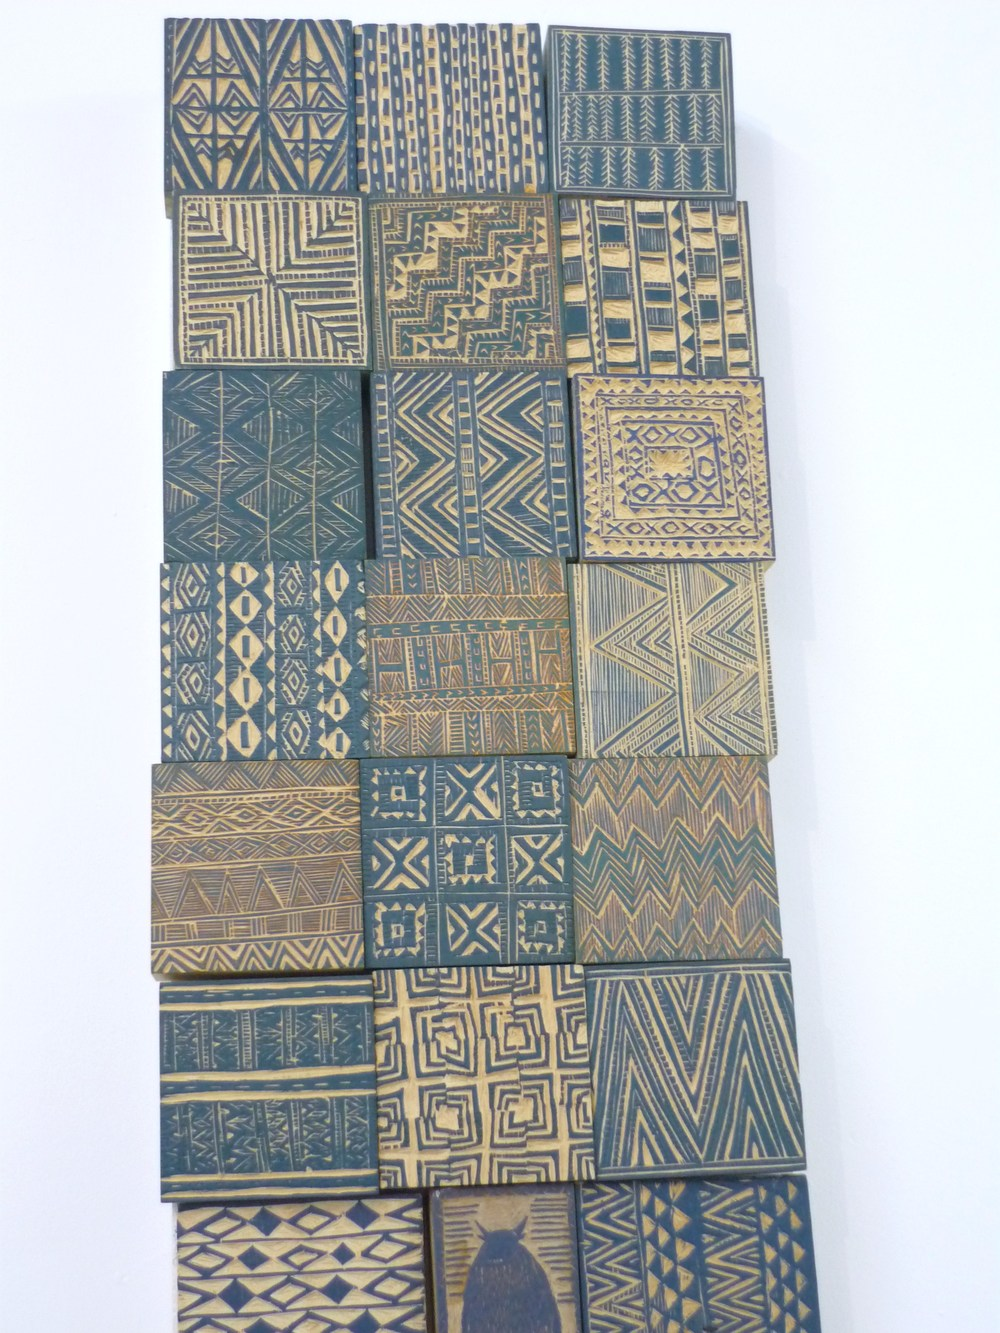 Wooden printing blocks.